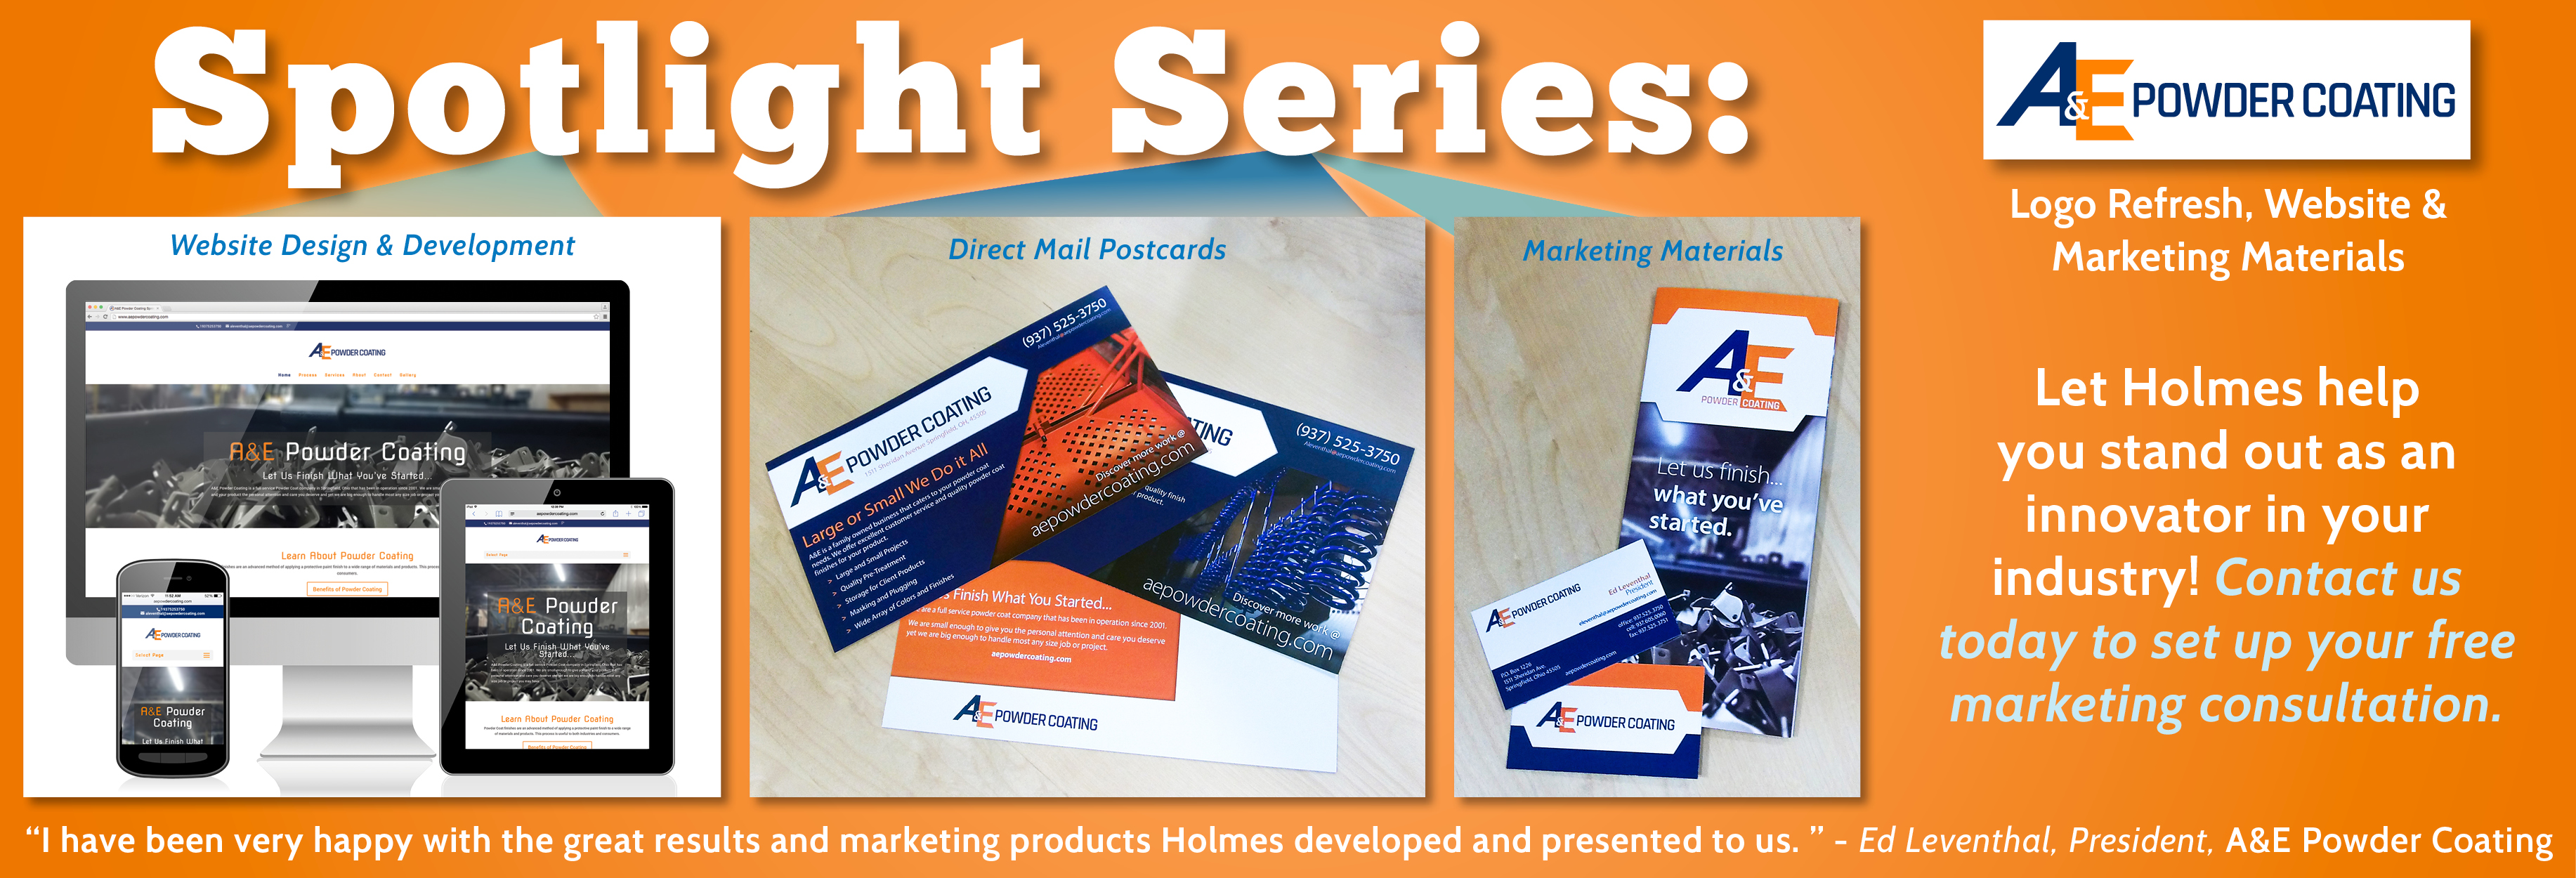 Spotlight Series - A&E Powder Coating